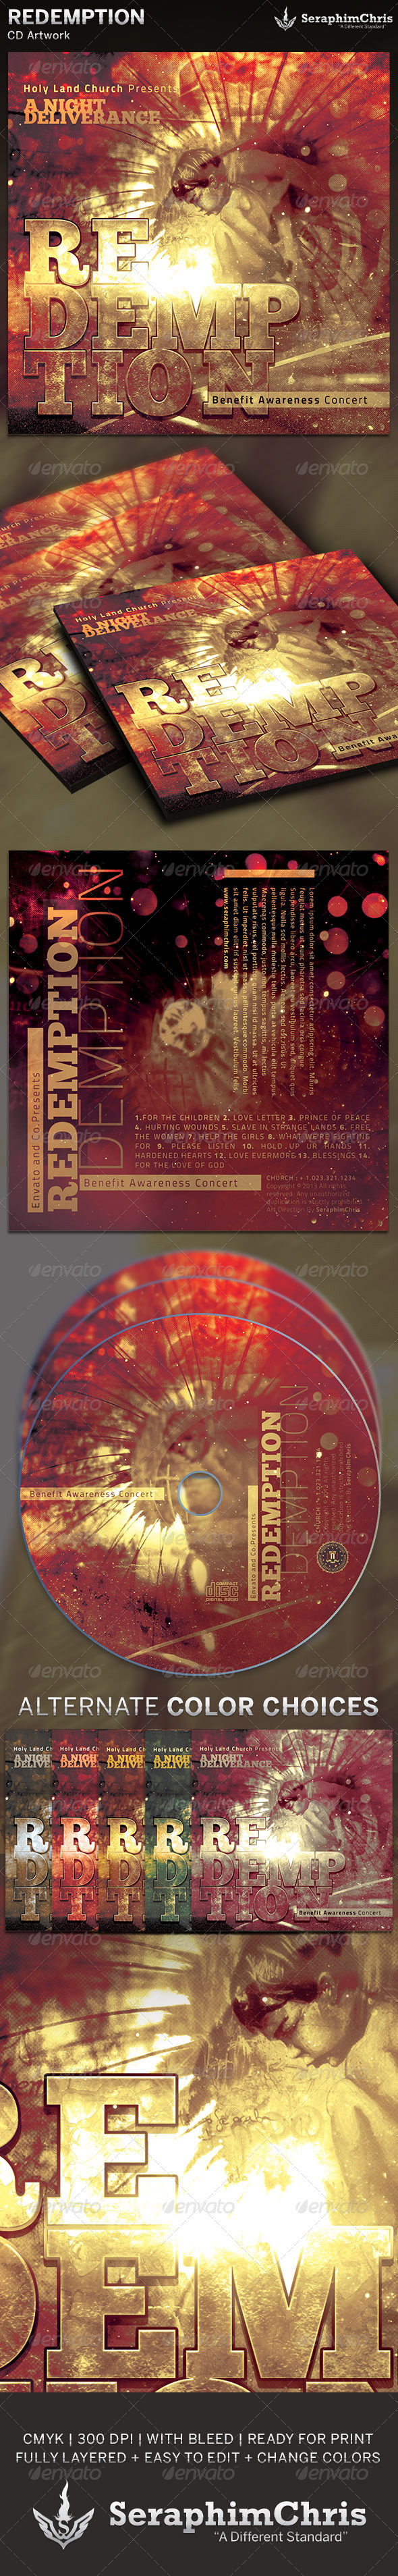 Redemption Benefit Concert: CD Artwork Template - CD & DVD Artwork Print Templates